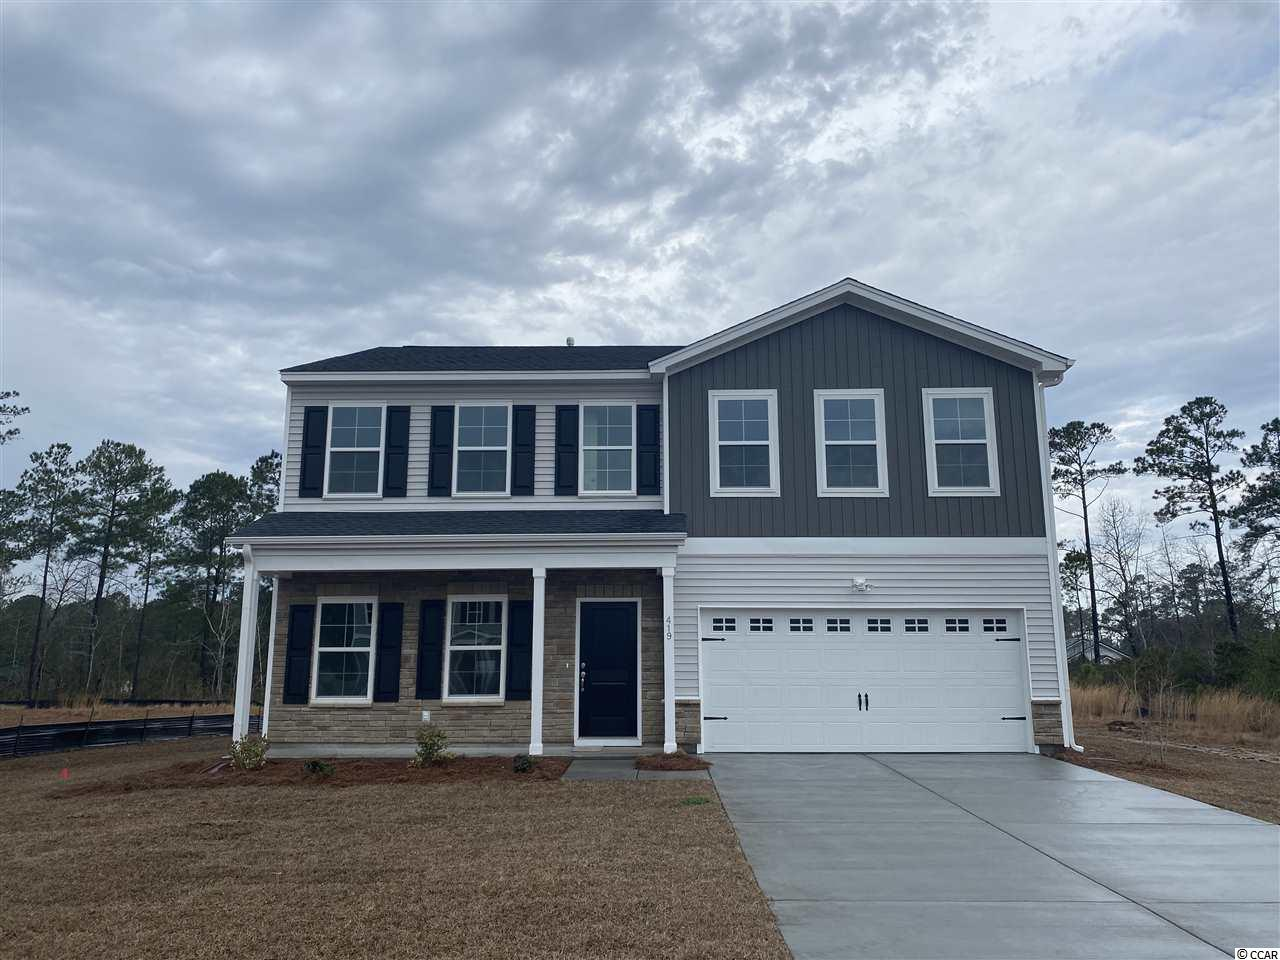 Call us for more information on our current incentives and closing costs!!! This McDowell plan is under construction, to be completed in Jan 2021. With 2,237 Htd SF, this 2-story home has 5 bedrooms including a guest suite downstairs, 3 baths, plus a loft upstairs! Plenty of space for everyone! Tankless Gas Hot Water, Gas Heat, and Gas Range/Oven, Stainless Steel appliances, Granite in Kitchen, Wood-look plank waterproof flooring, Covered patio plus extended patio with gas hookup for grill, Lawn Irrigation system, and more! Interior photos are of a McDowell plan in another community. All measurements are considered accurate but not guaranteed. Buyer to verify. You will have Peace of Mind with Nationally Recognized Customer Service Care! Incentives change periodically, please ask what we can do to help! We qualify for USDA financing! All measurements are approximate, buyer to verify.